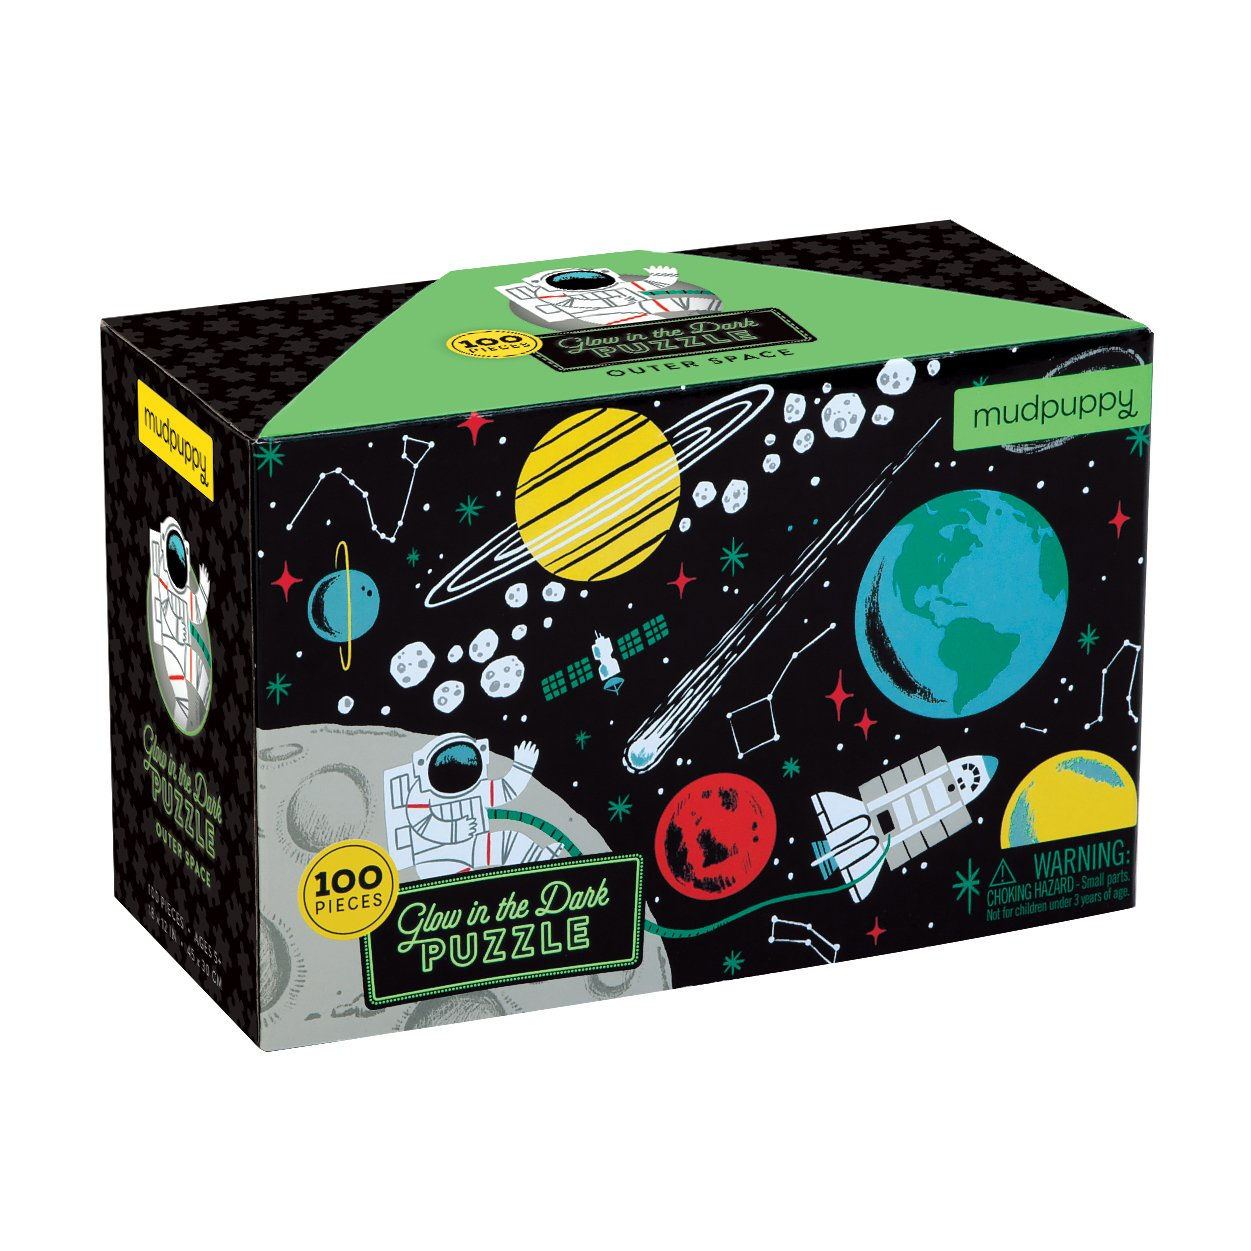 Mudpuppy 100-Piece Outer Space Glow-in-the-Dark Puzzle – Award-Winning Puzzle Glowing Pieces Will Amaze Kids Age 5+